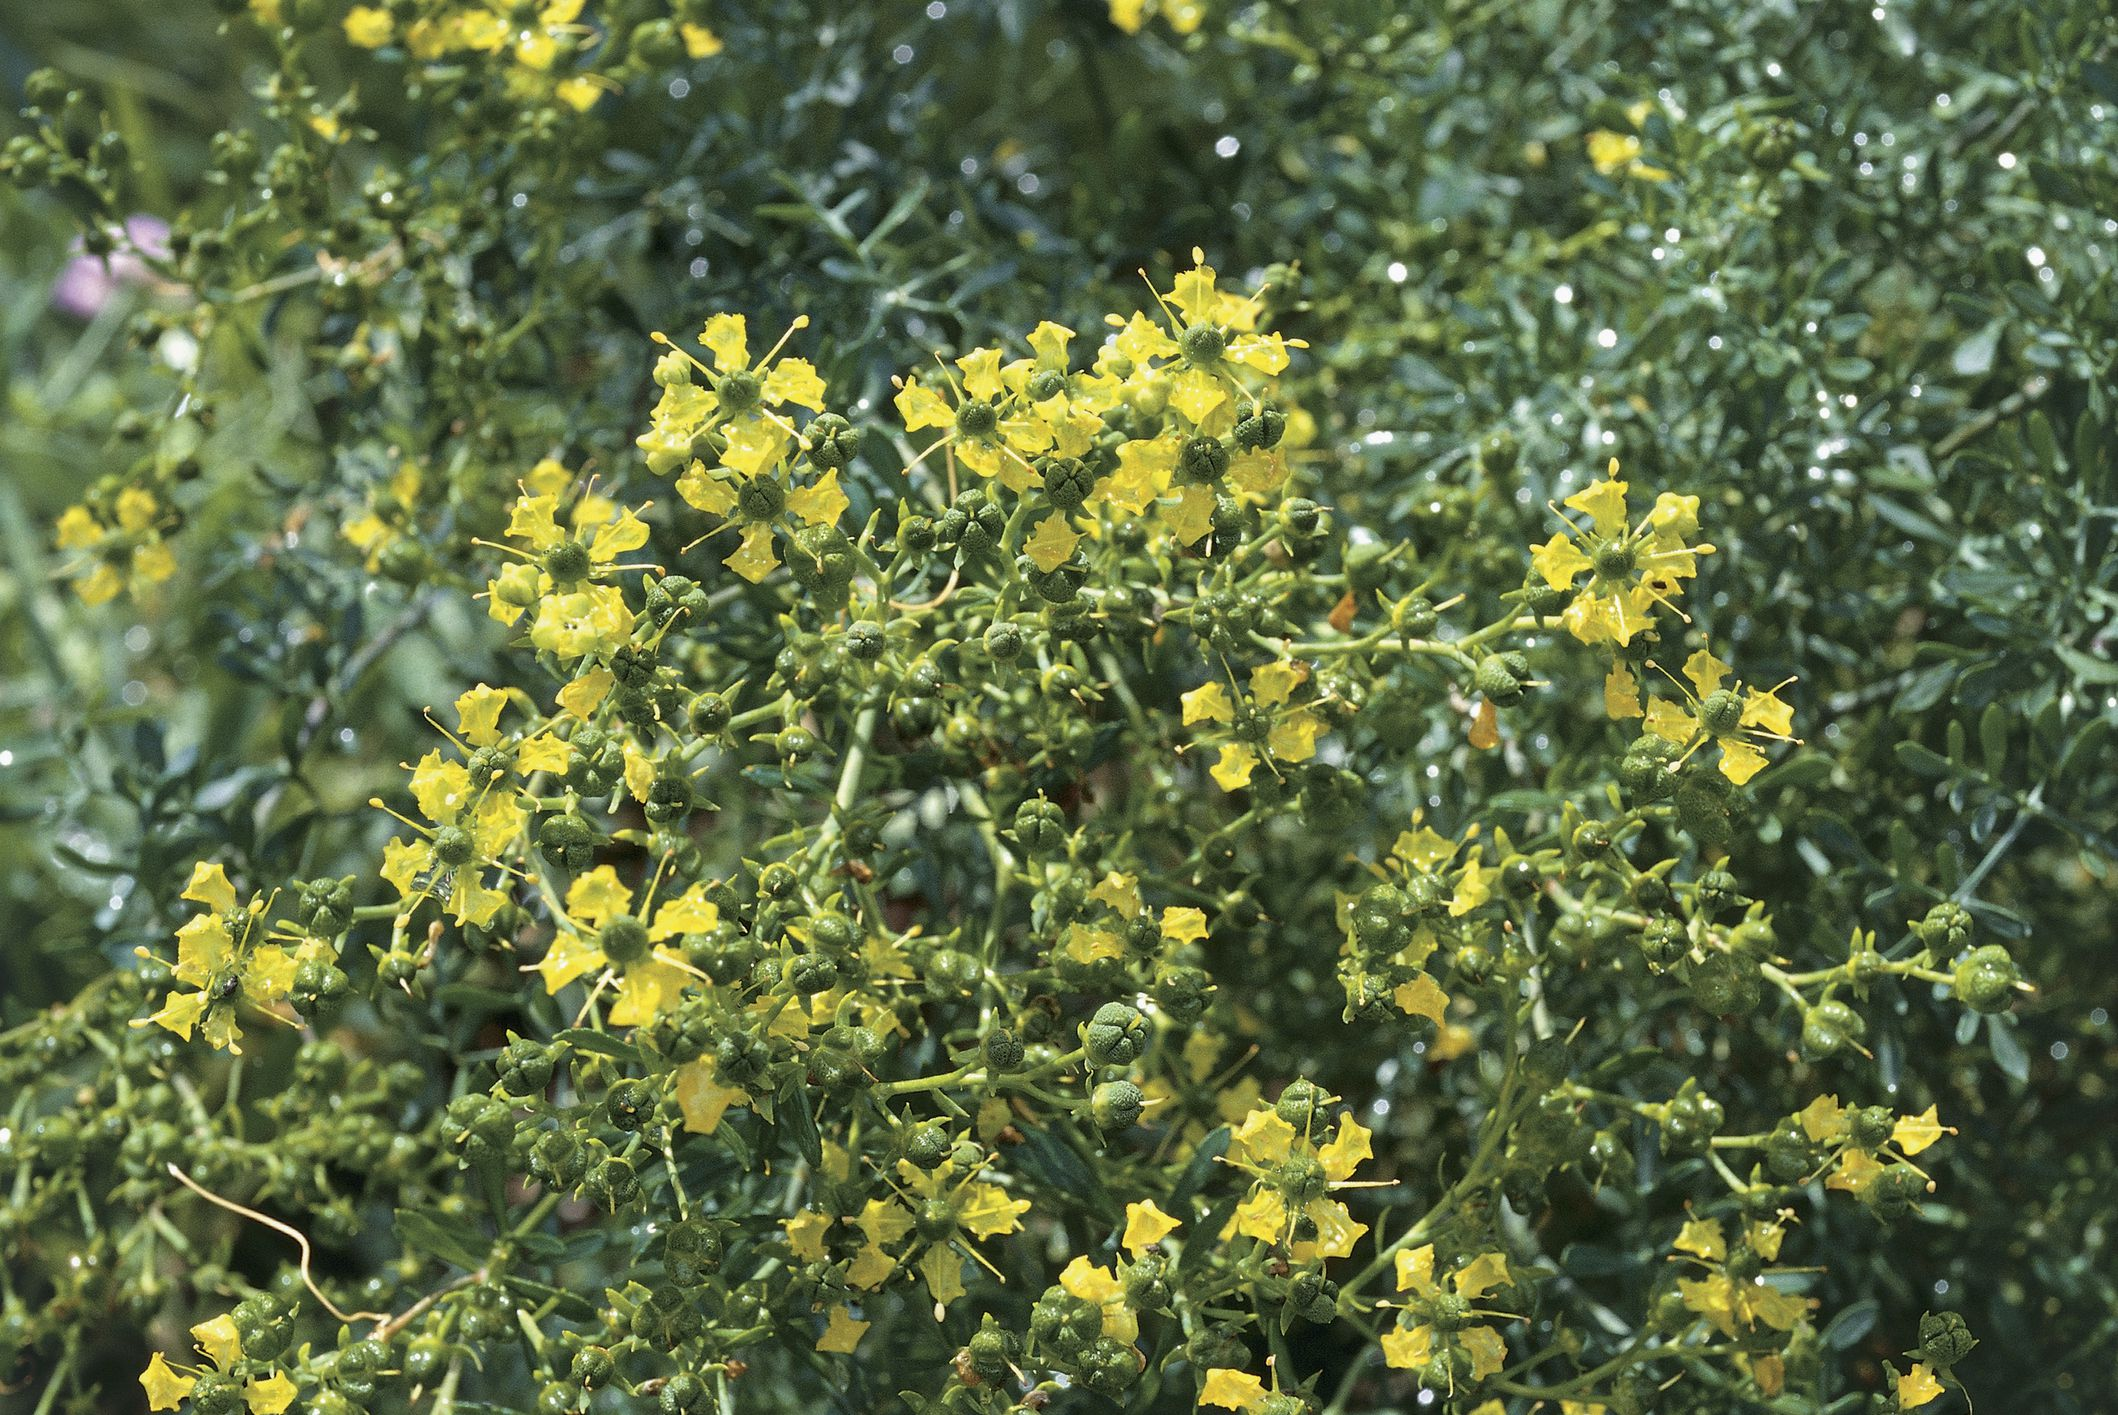 How To Grow And Care For Rue Flowers